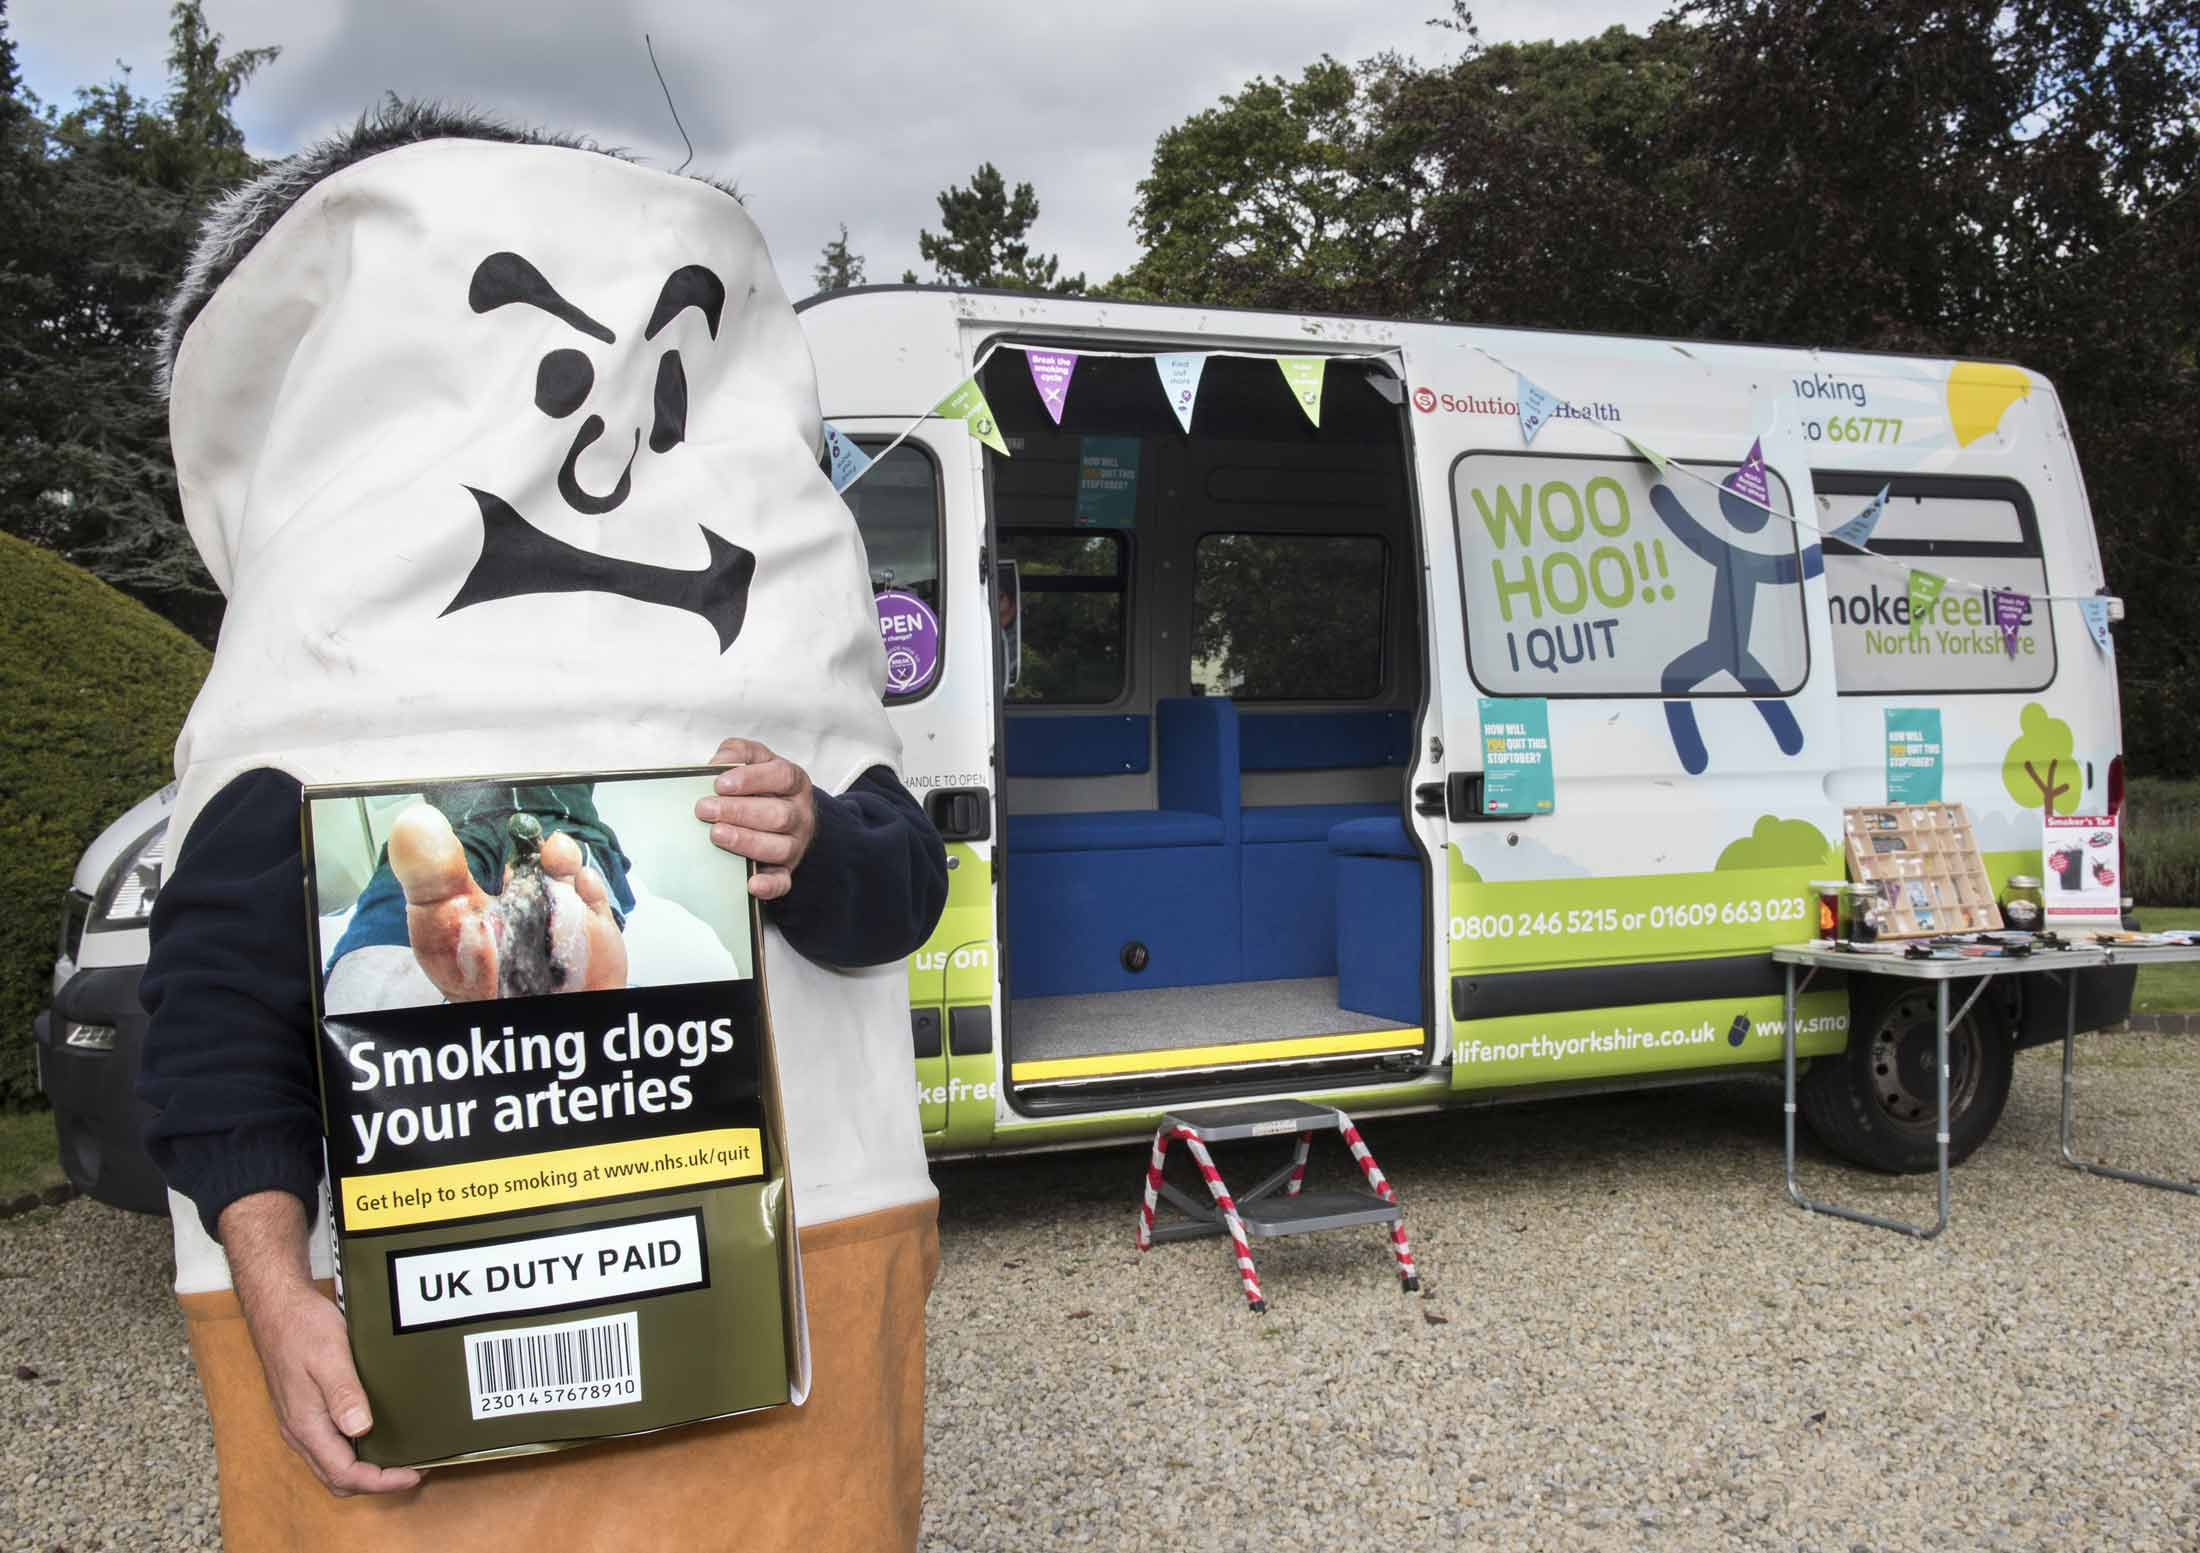 Wellness on wheels - Smokefreelifenorthyorkshire has a mobile clinic which tours the county